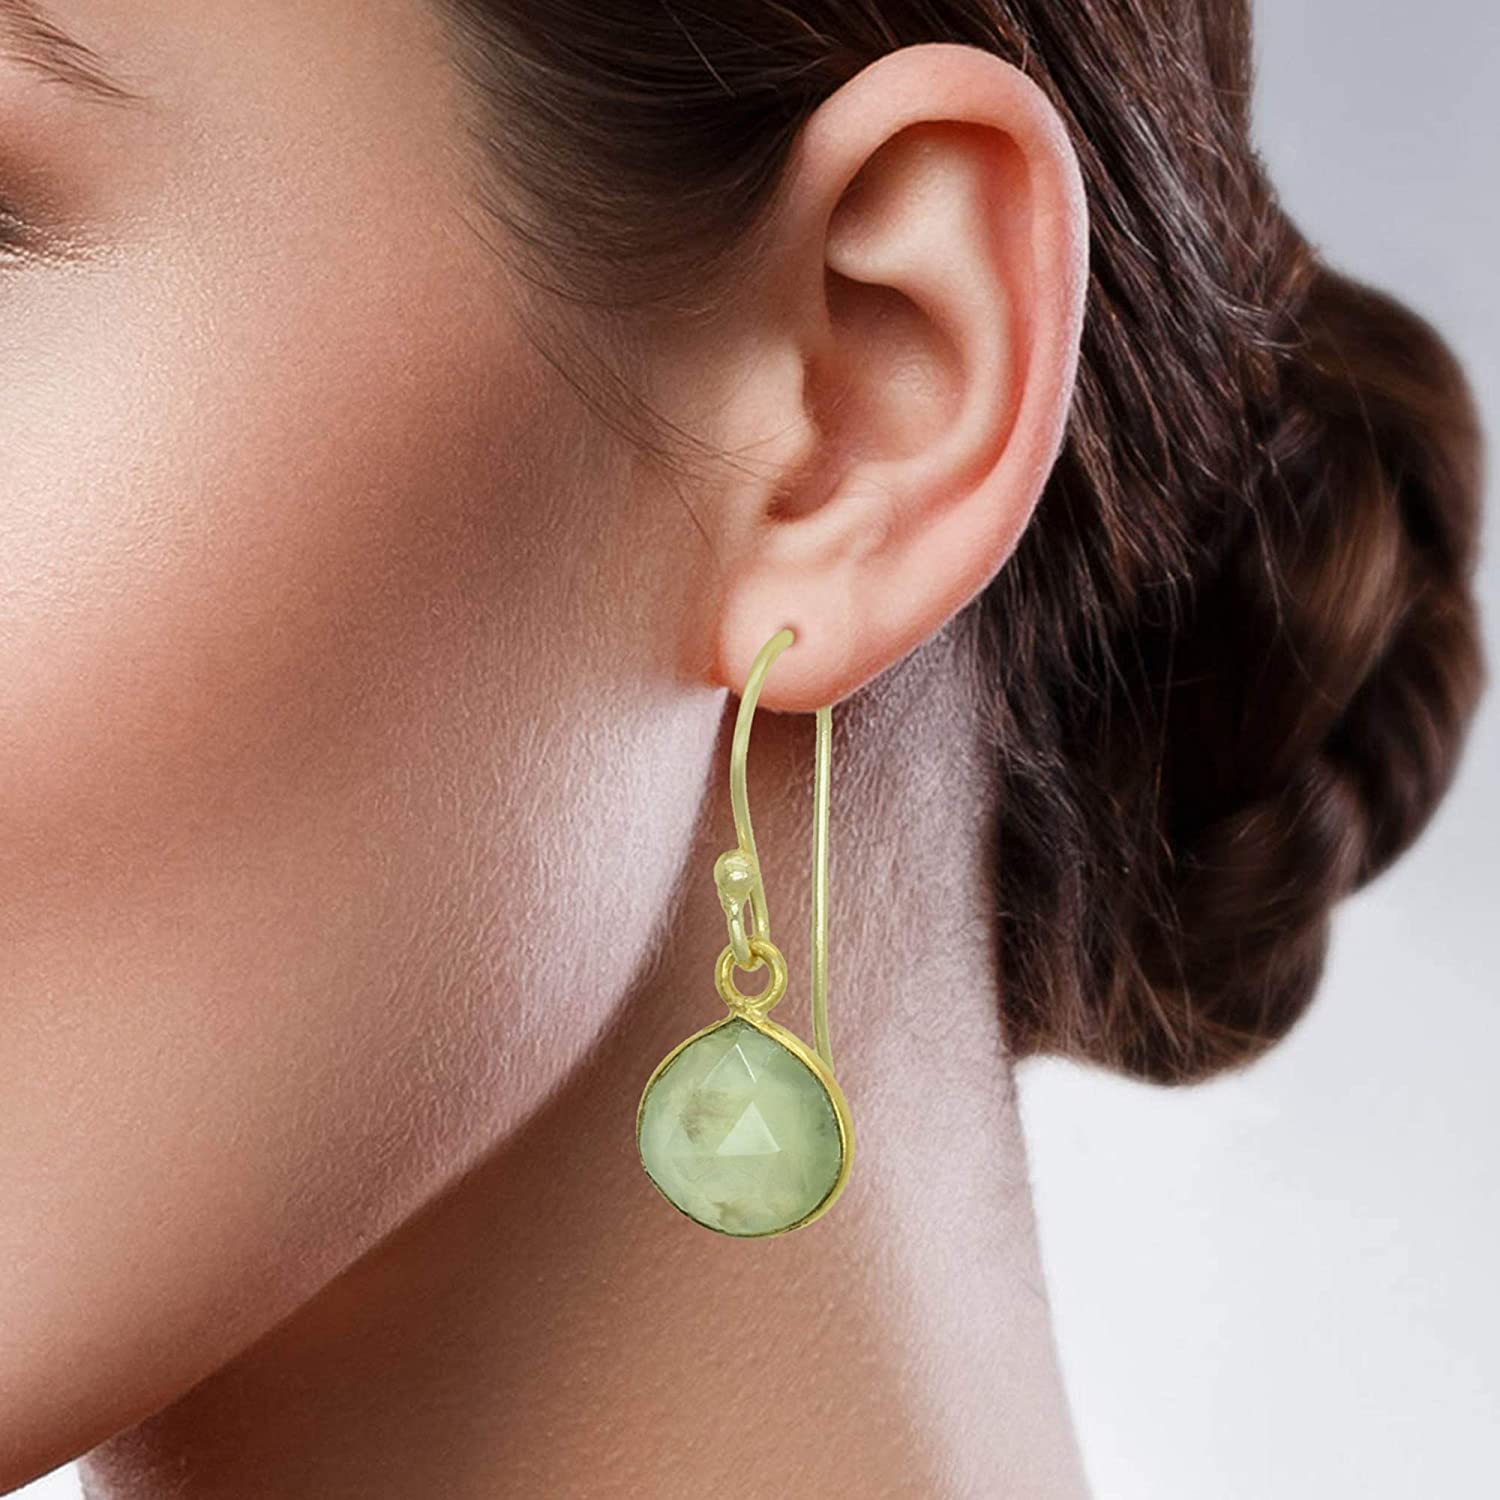 The V Collection earrings yellow gold plated tabiz prehnite dangling earrings for women and girls